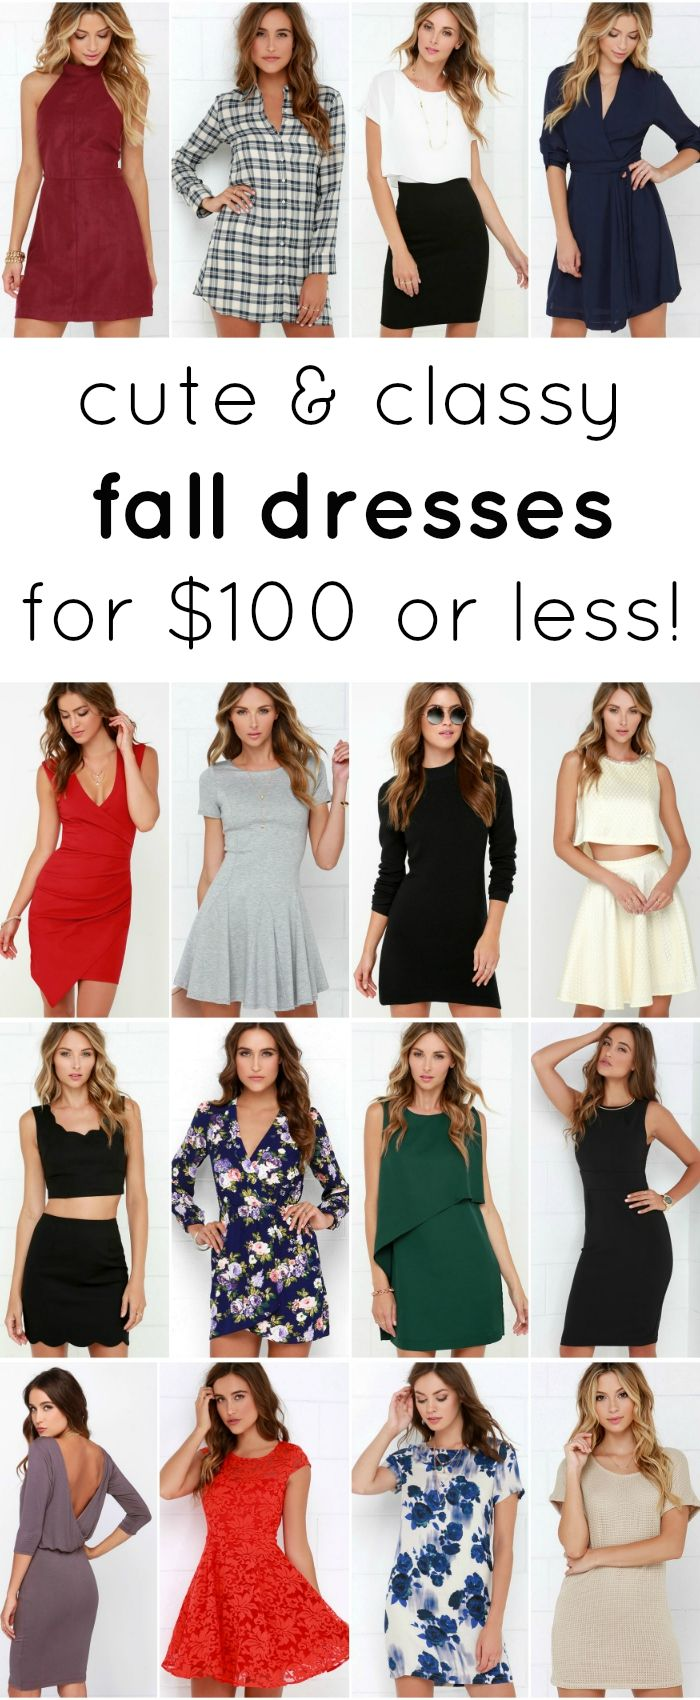 The cutest dresses for fall that won't break the bank!